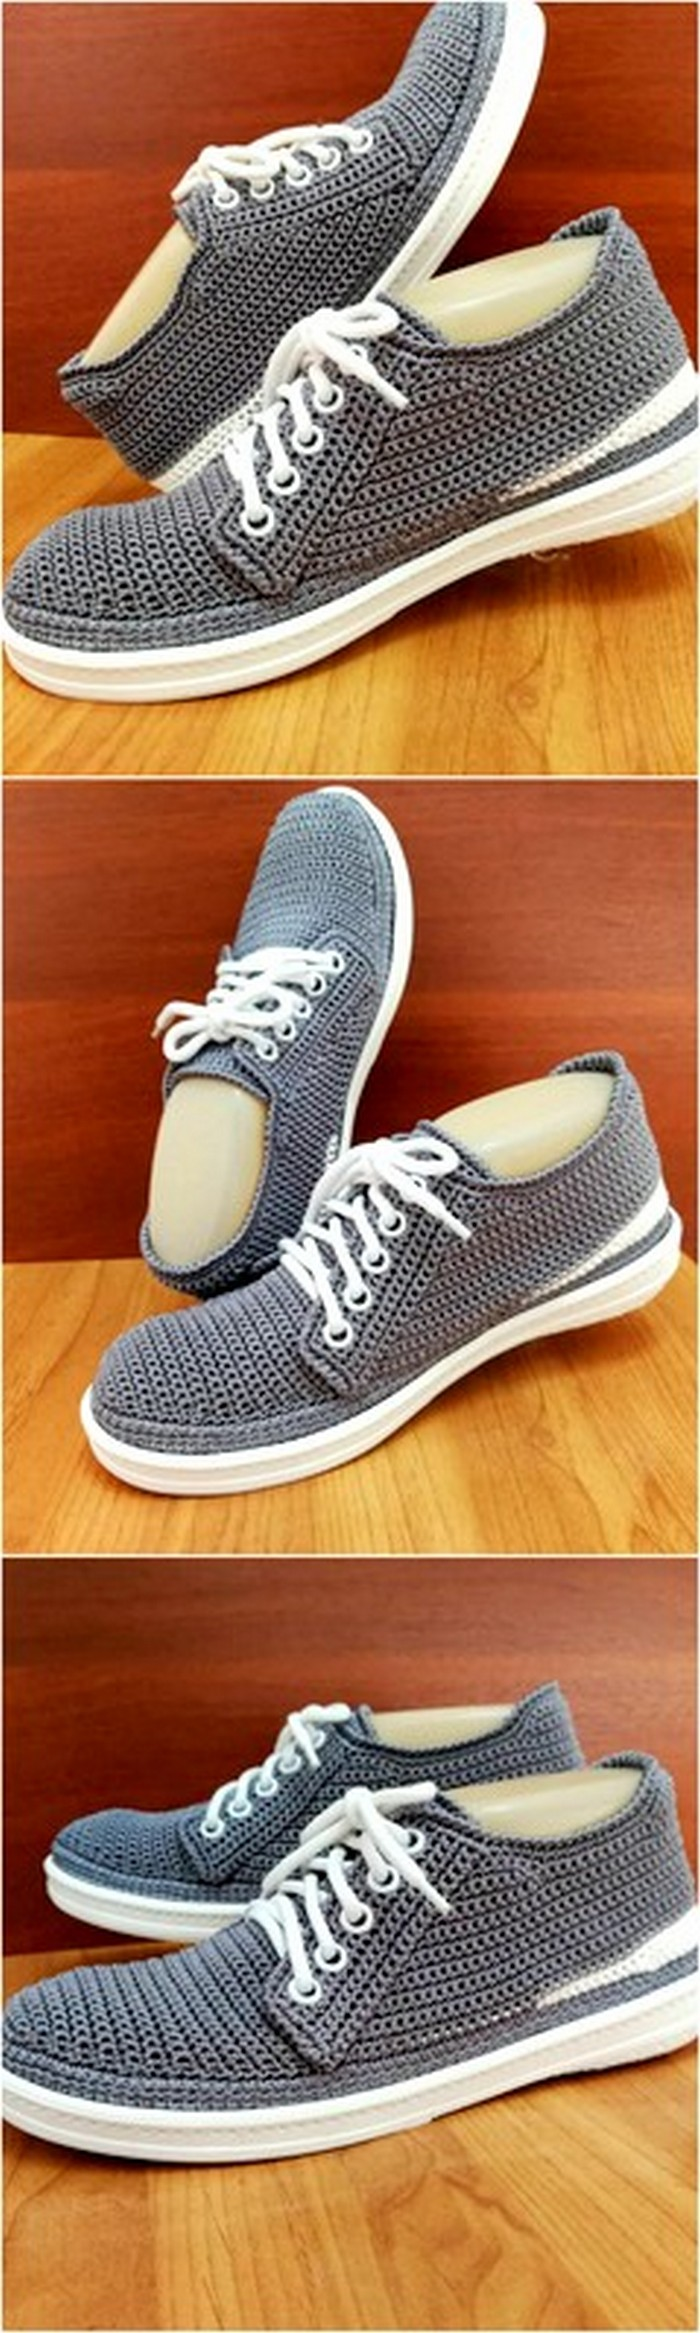 interesting design of crochet shoes for you